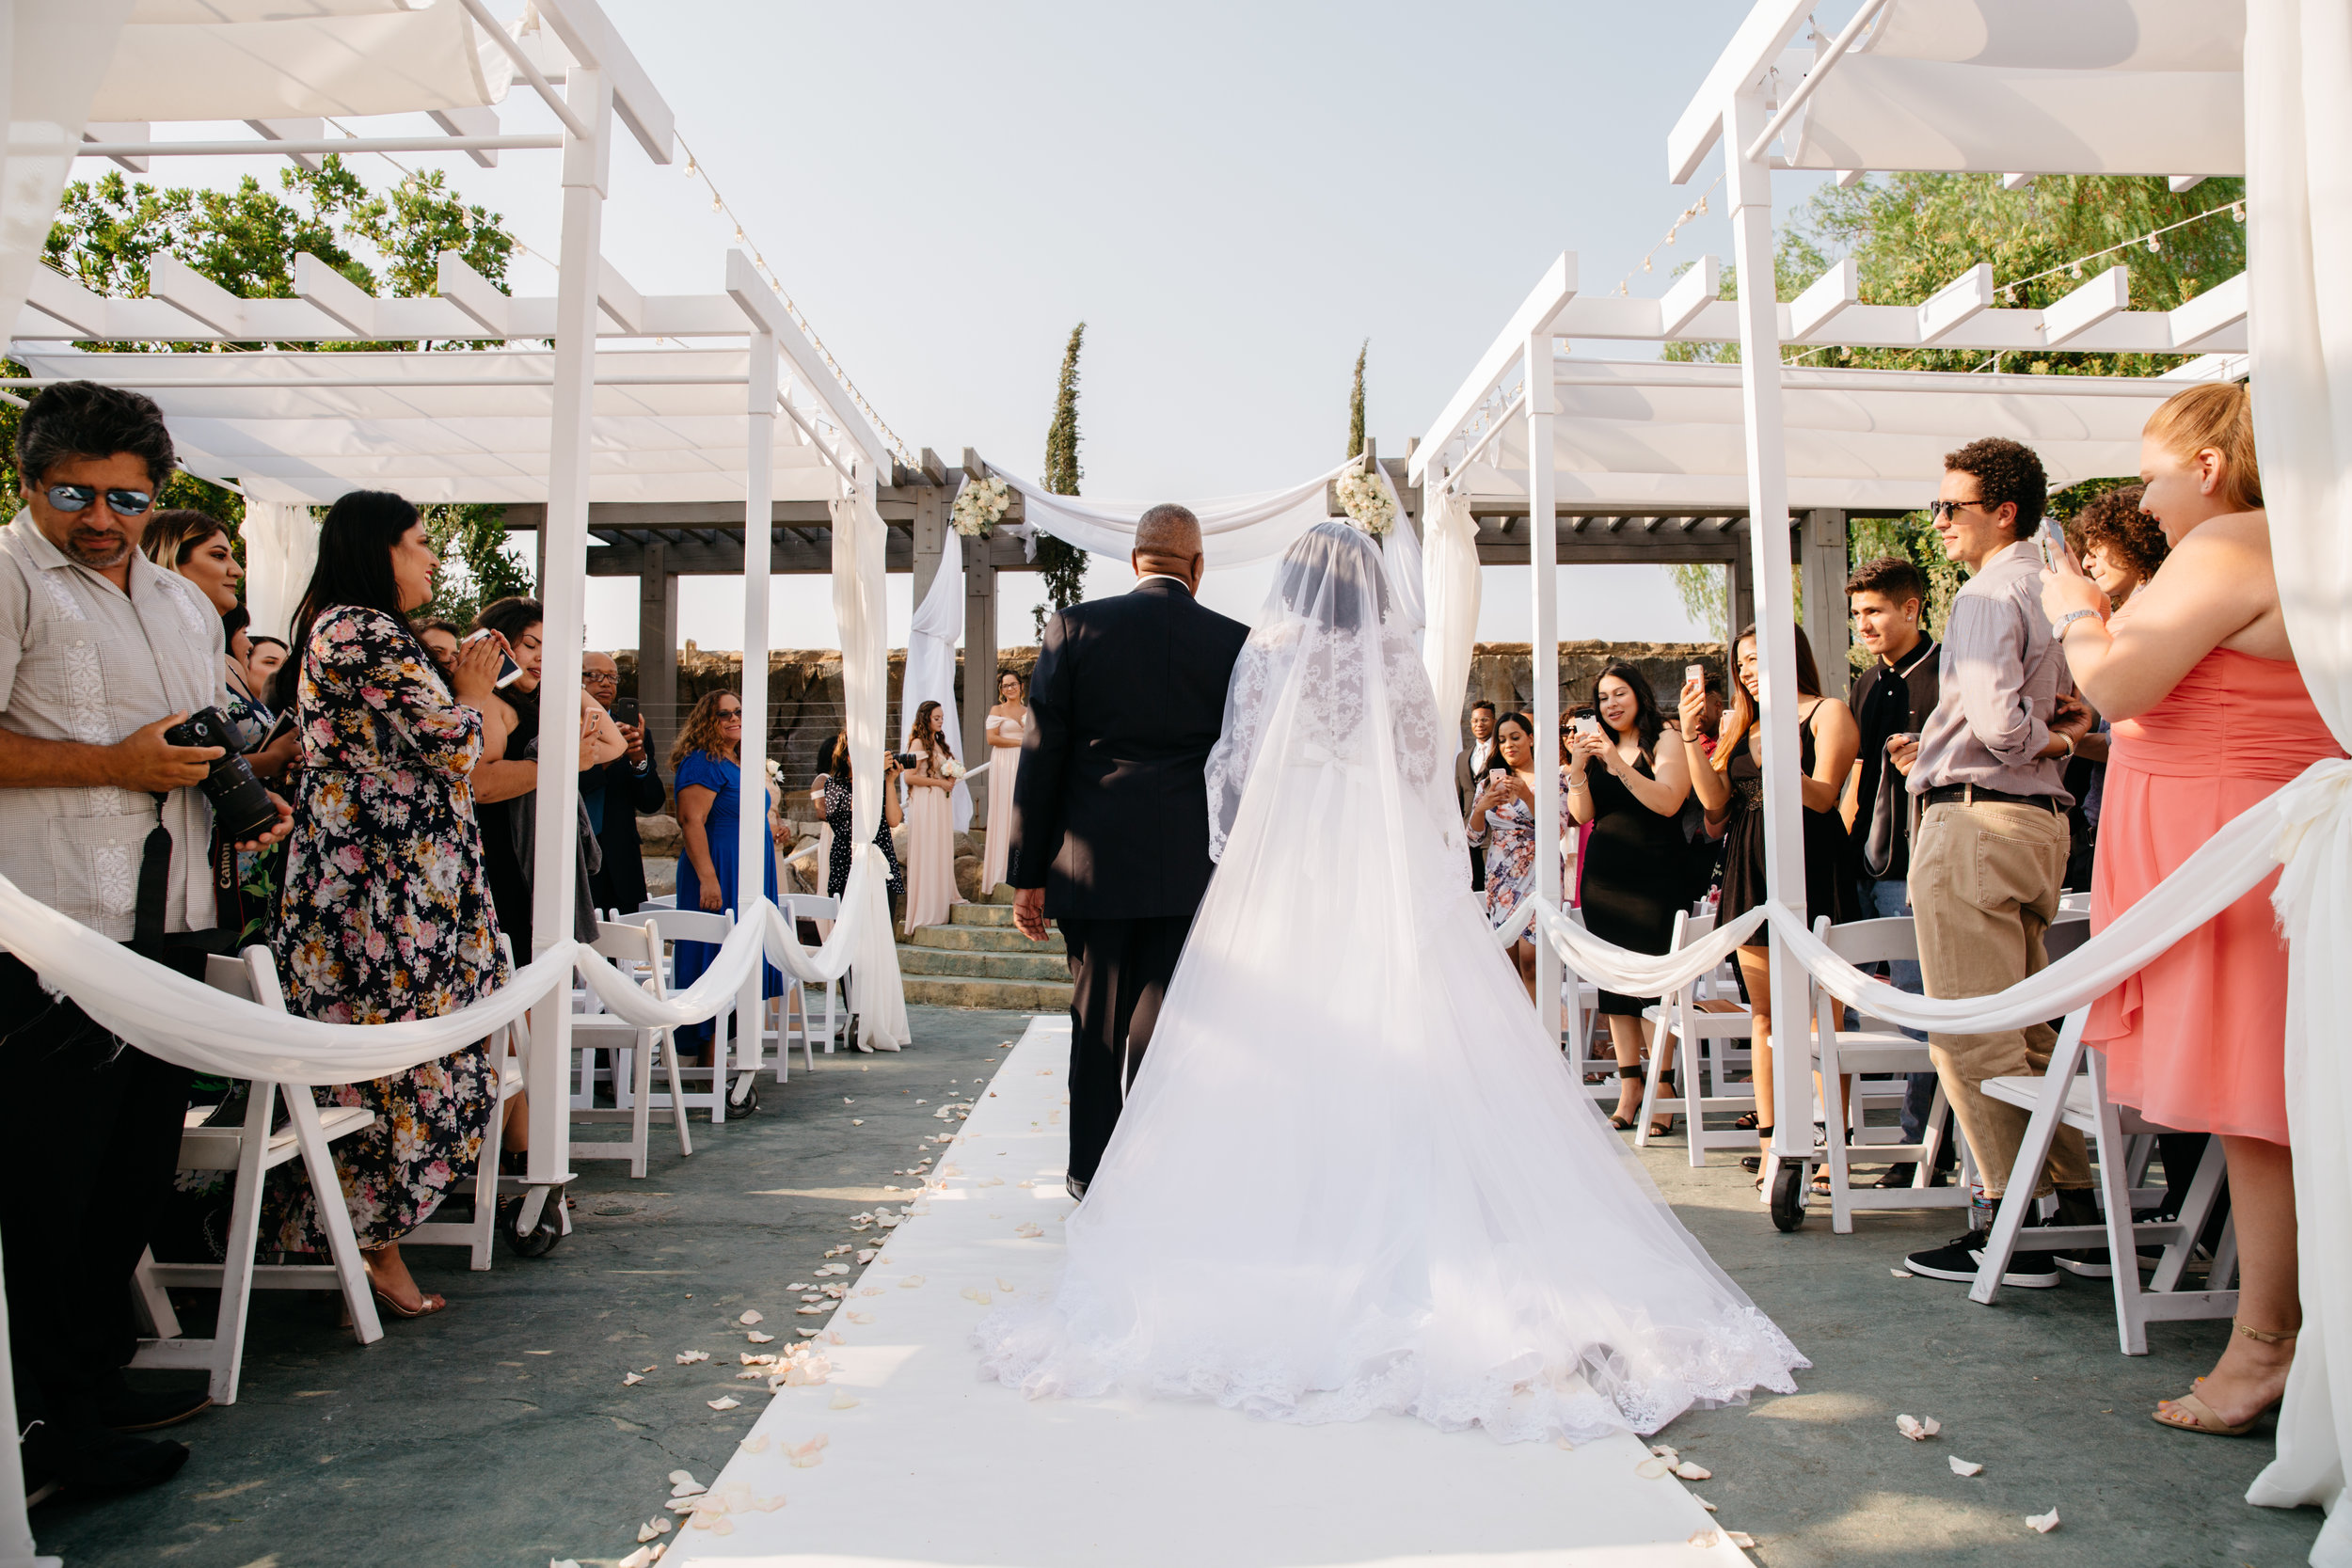 The Vineyard Wedding Jenna Bells and Laces Photography-10.jpg